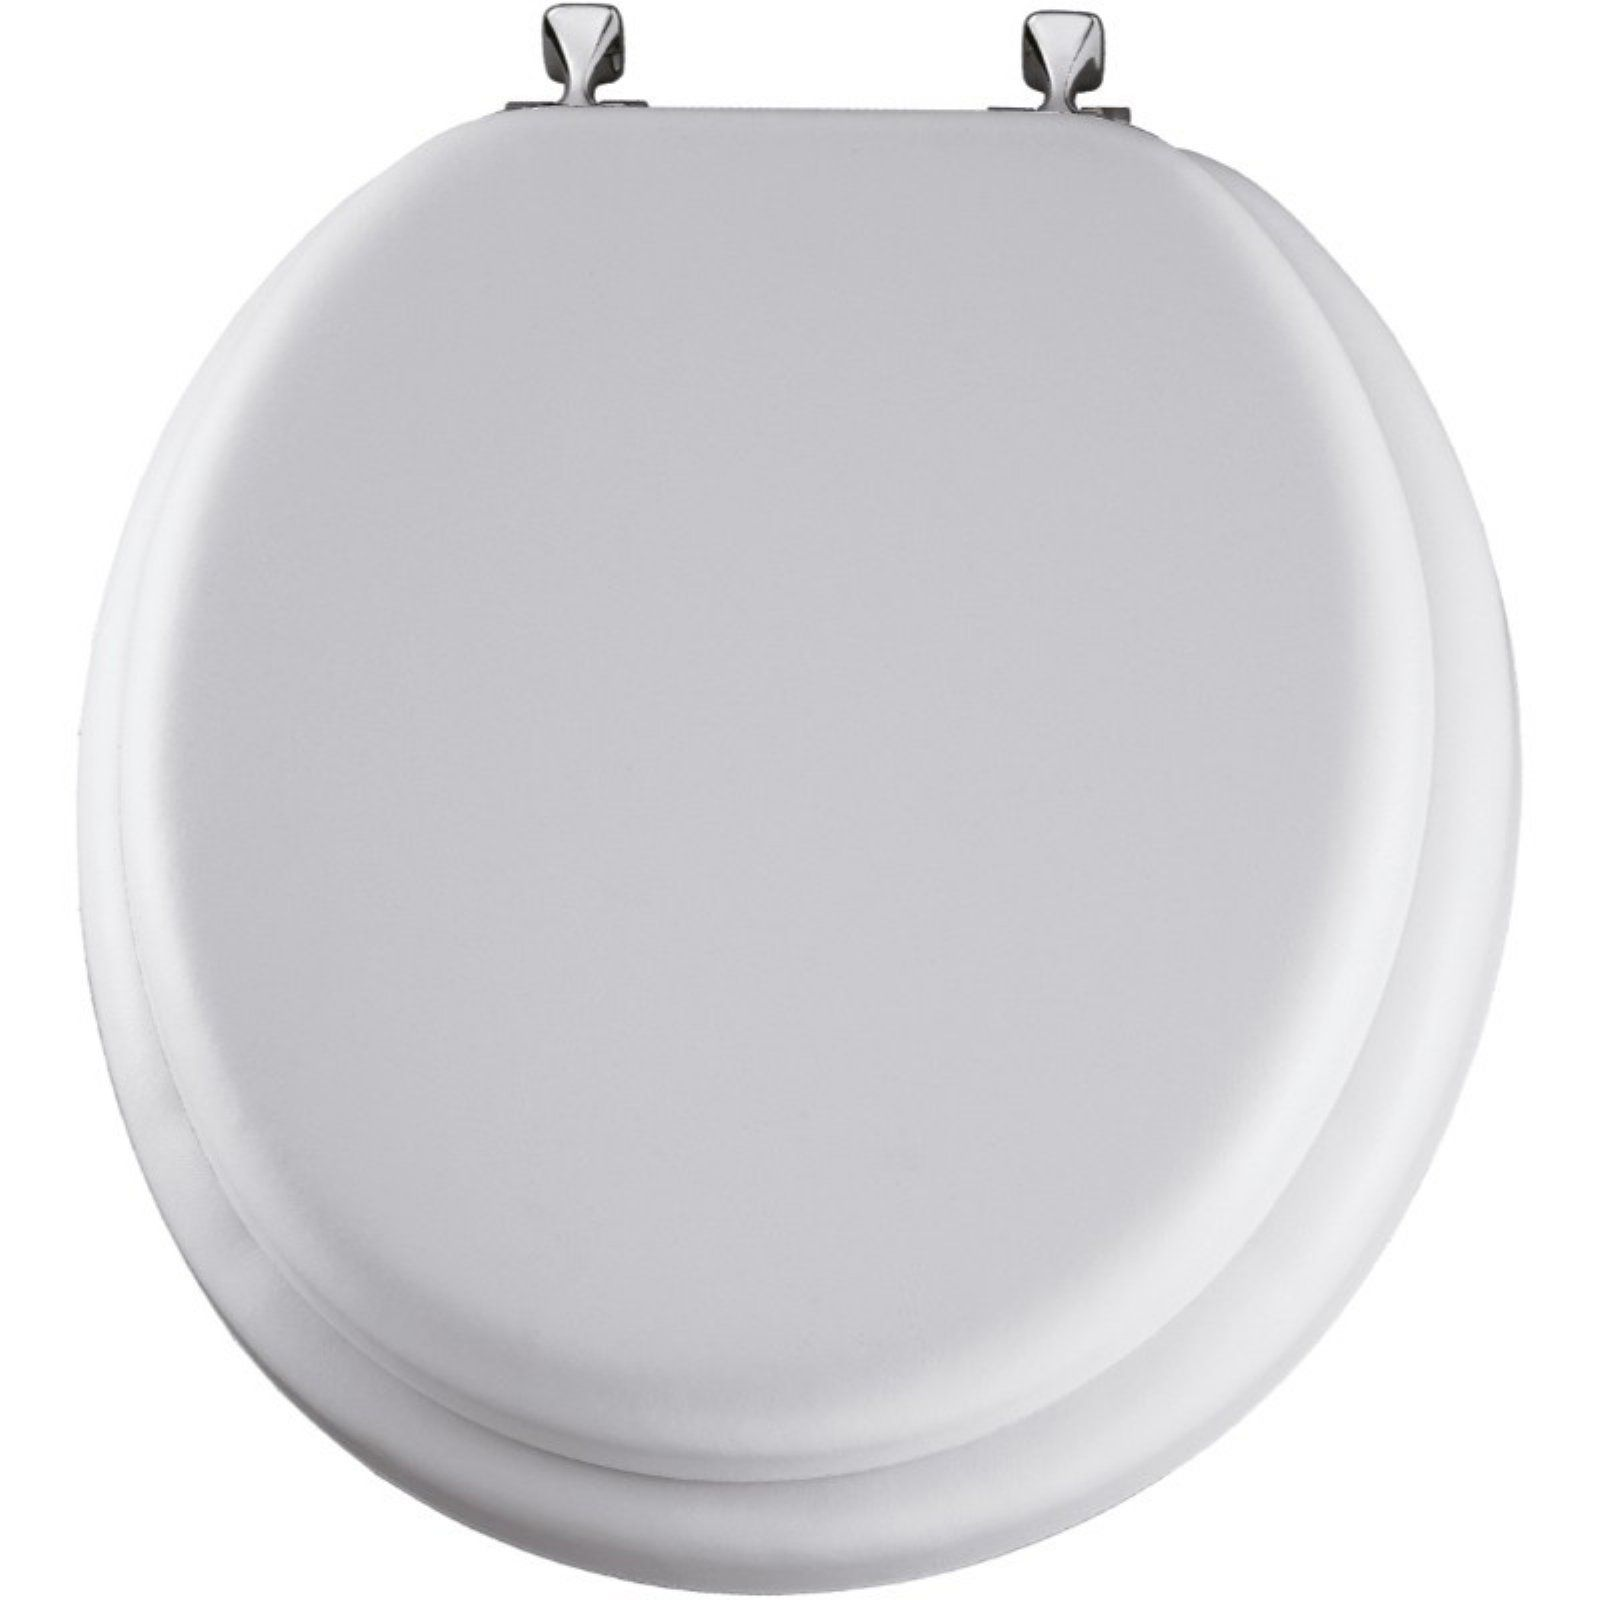 Mayfair Bemis 13cp 000 Round Deluxe Soft Toilet Seat